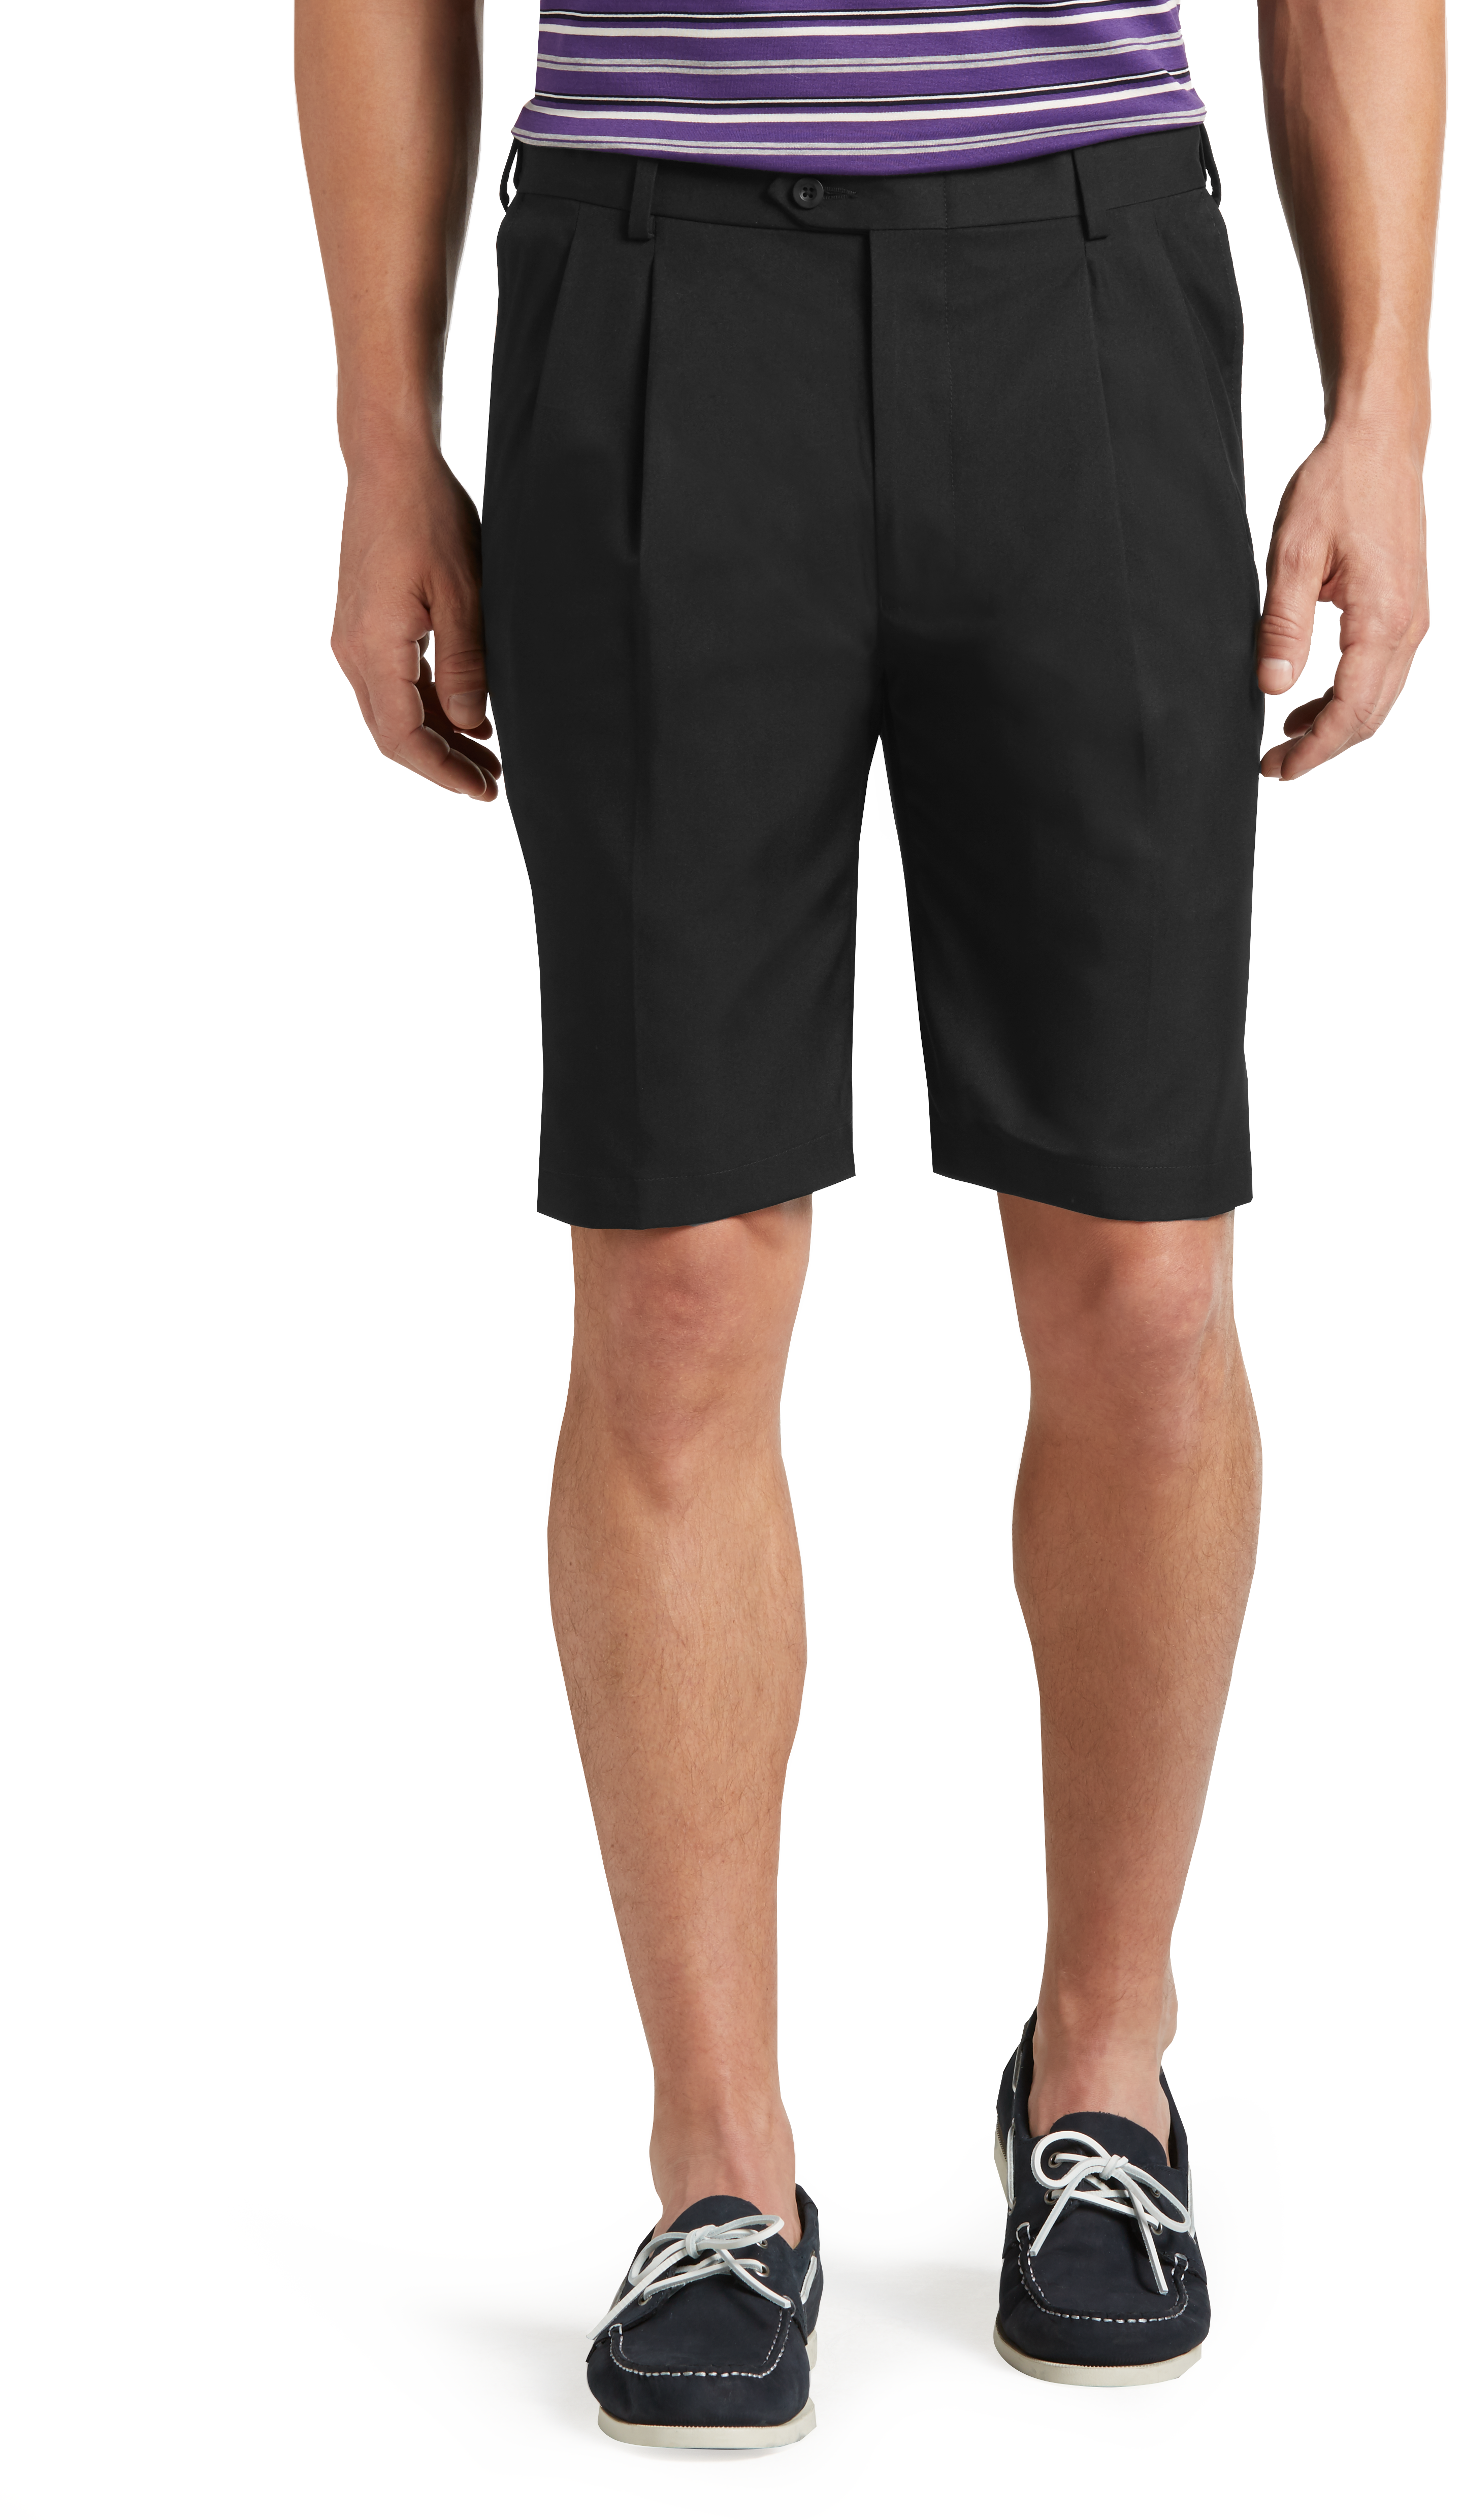 08ea16c8dd27 David Leadbetter Traditional Fit Pleated Front Performance Golf Shorts  CLEARANCE  2JCE